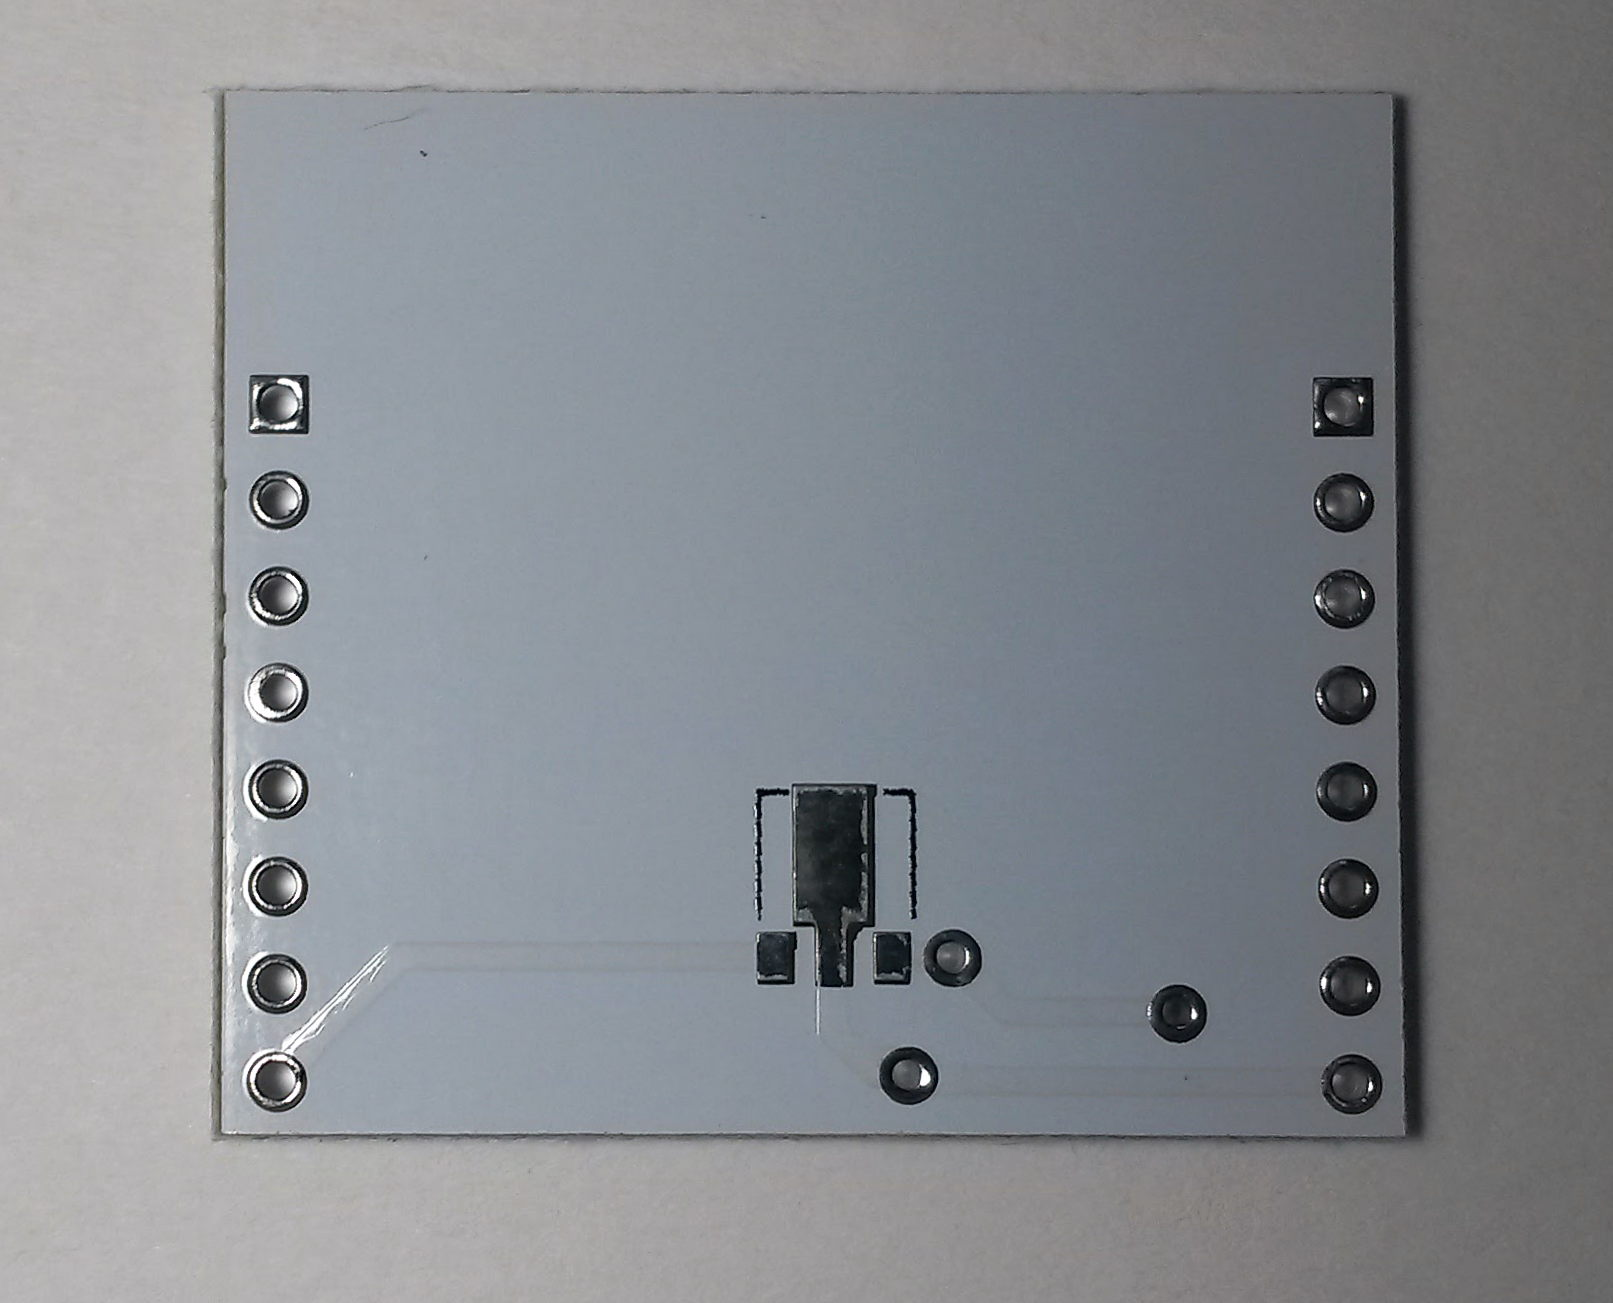 Minimal ESP-12 breakout - bottom side. You can see a place for SOT89 voltage regulator with pinout (from left): Gnd, Vin, Vout